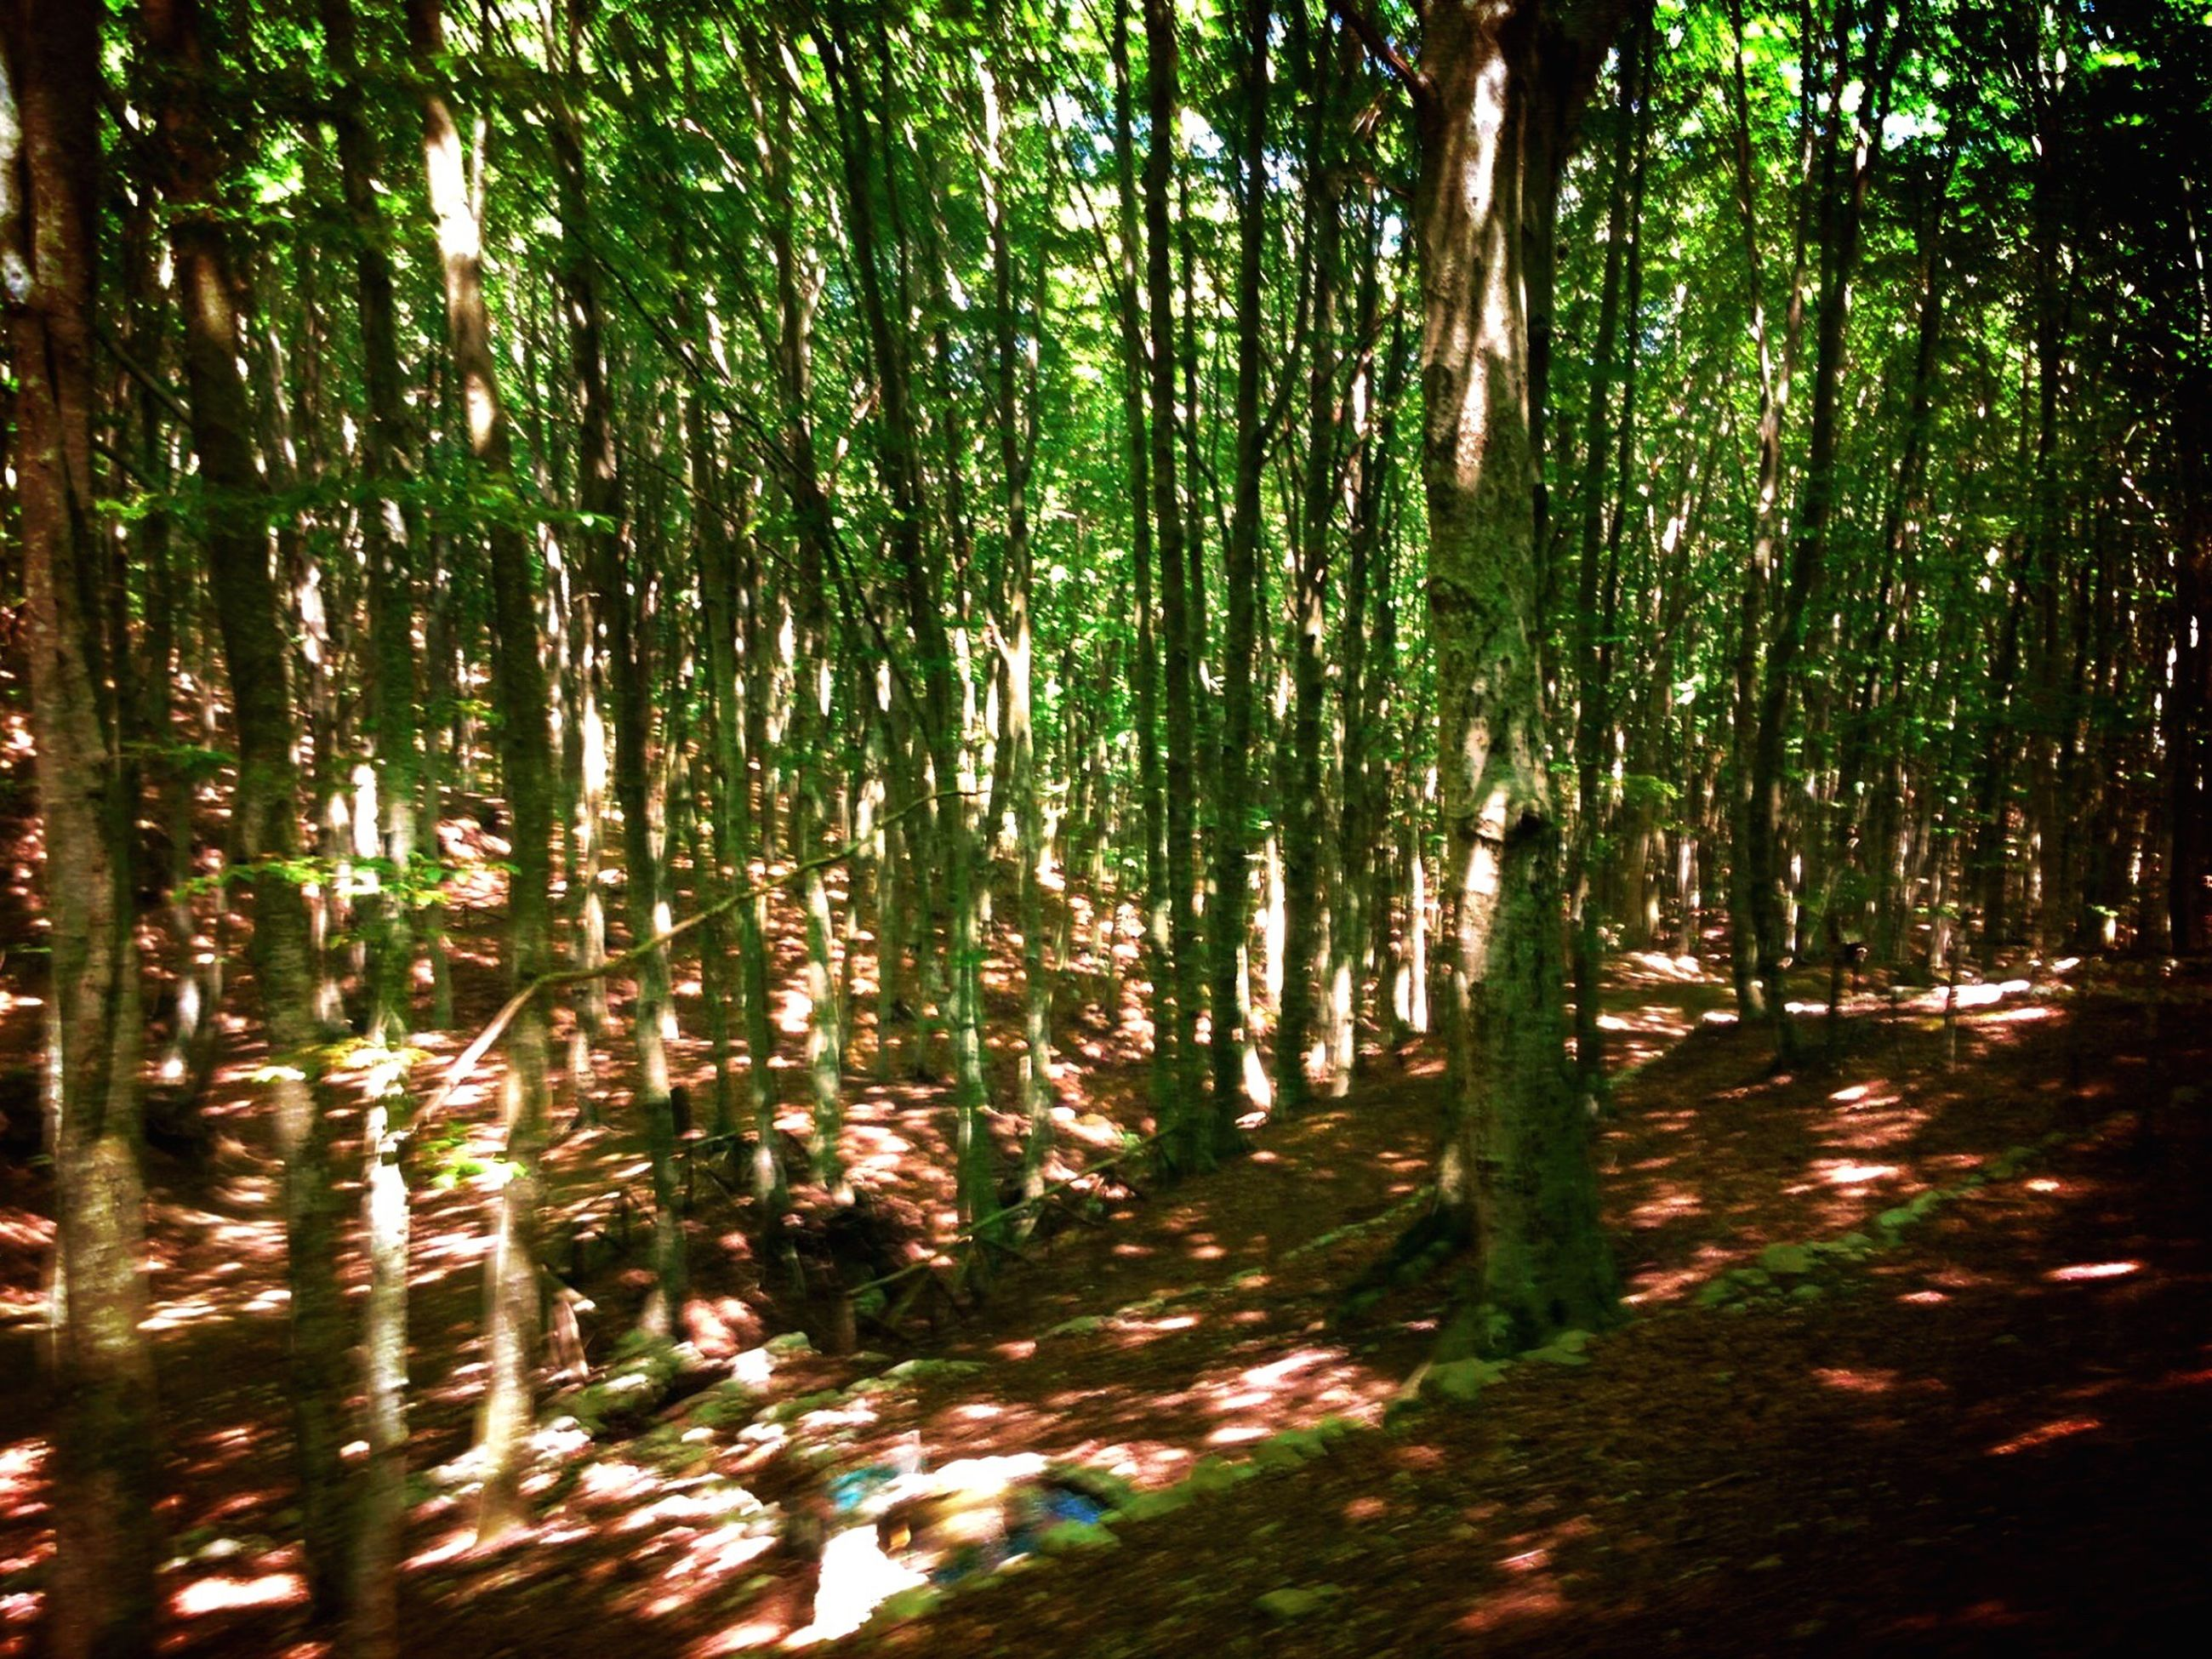 tree, nature, forest, outdoors, no people, green color, landscape, growth, beauty in nature, tranquility, lush - description, bamboo grove, day